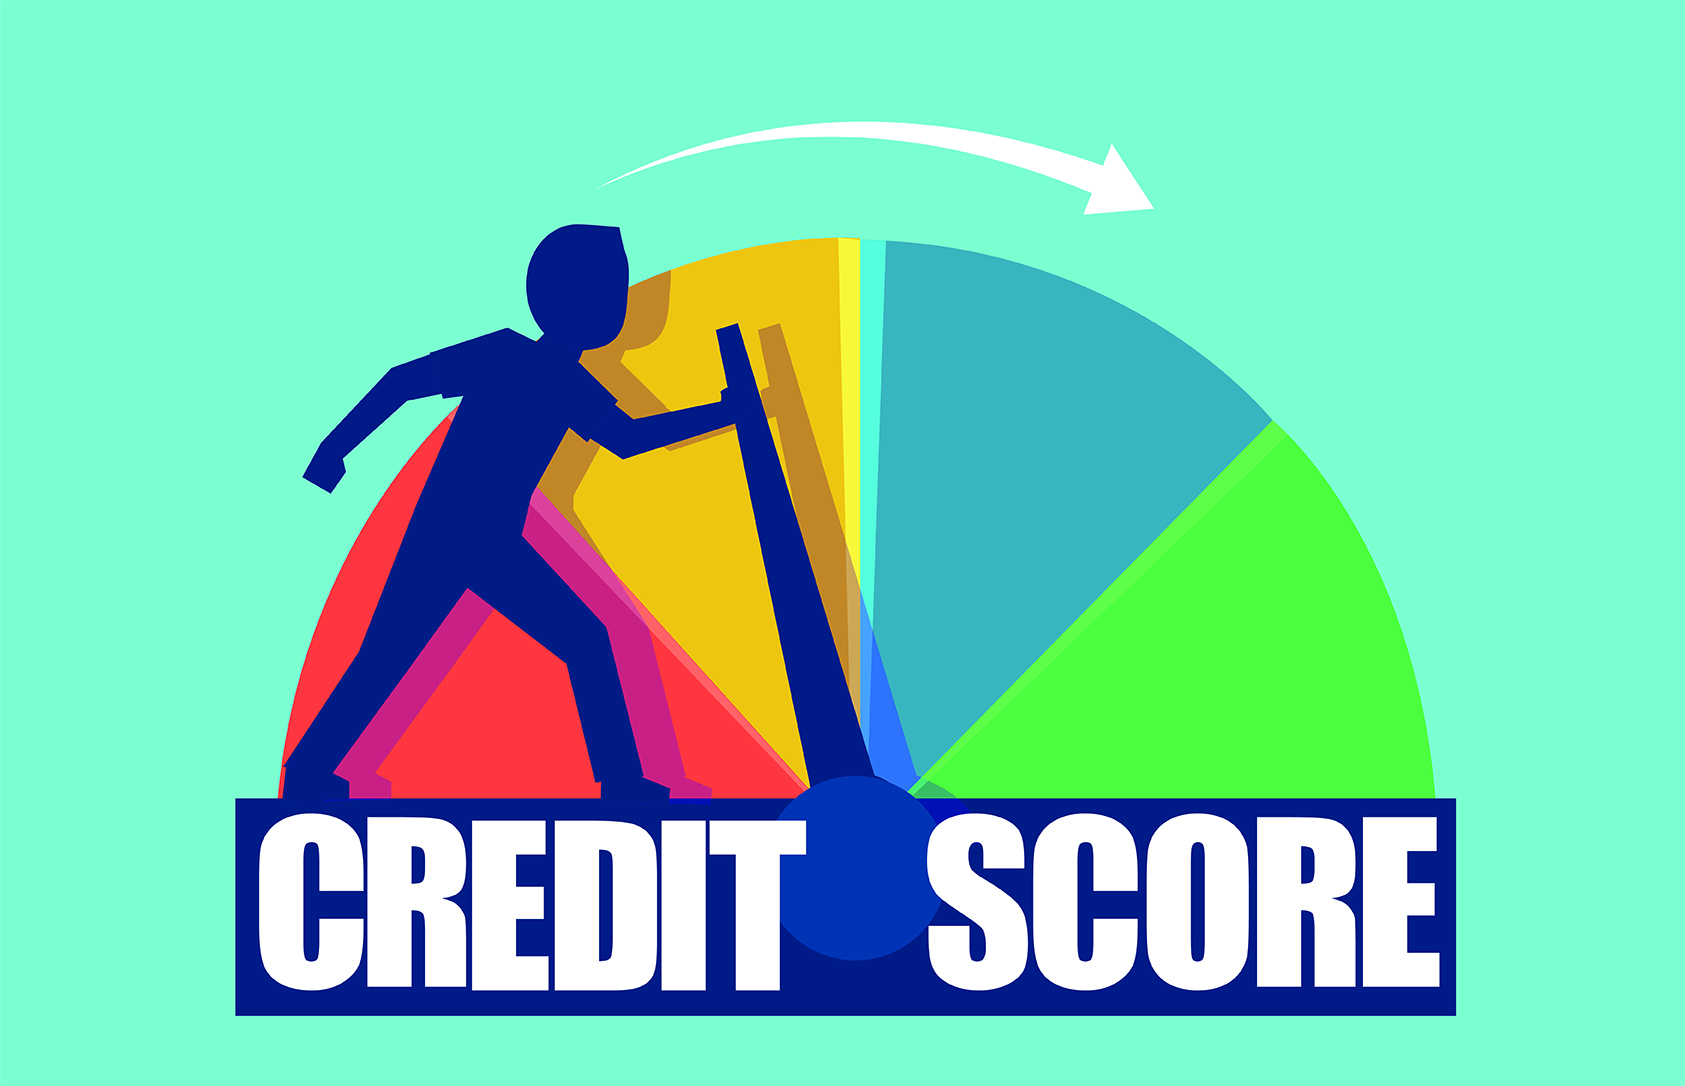 A animated man pushing the hand on the credit score rating to make it higher